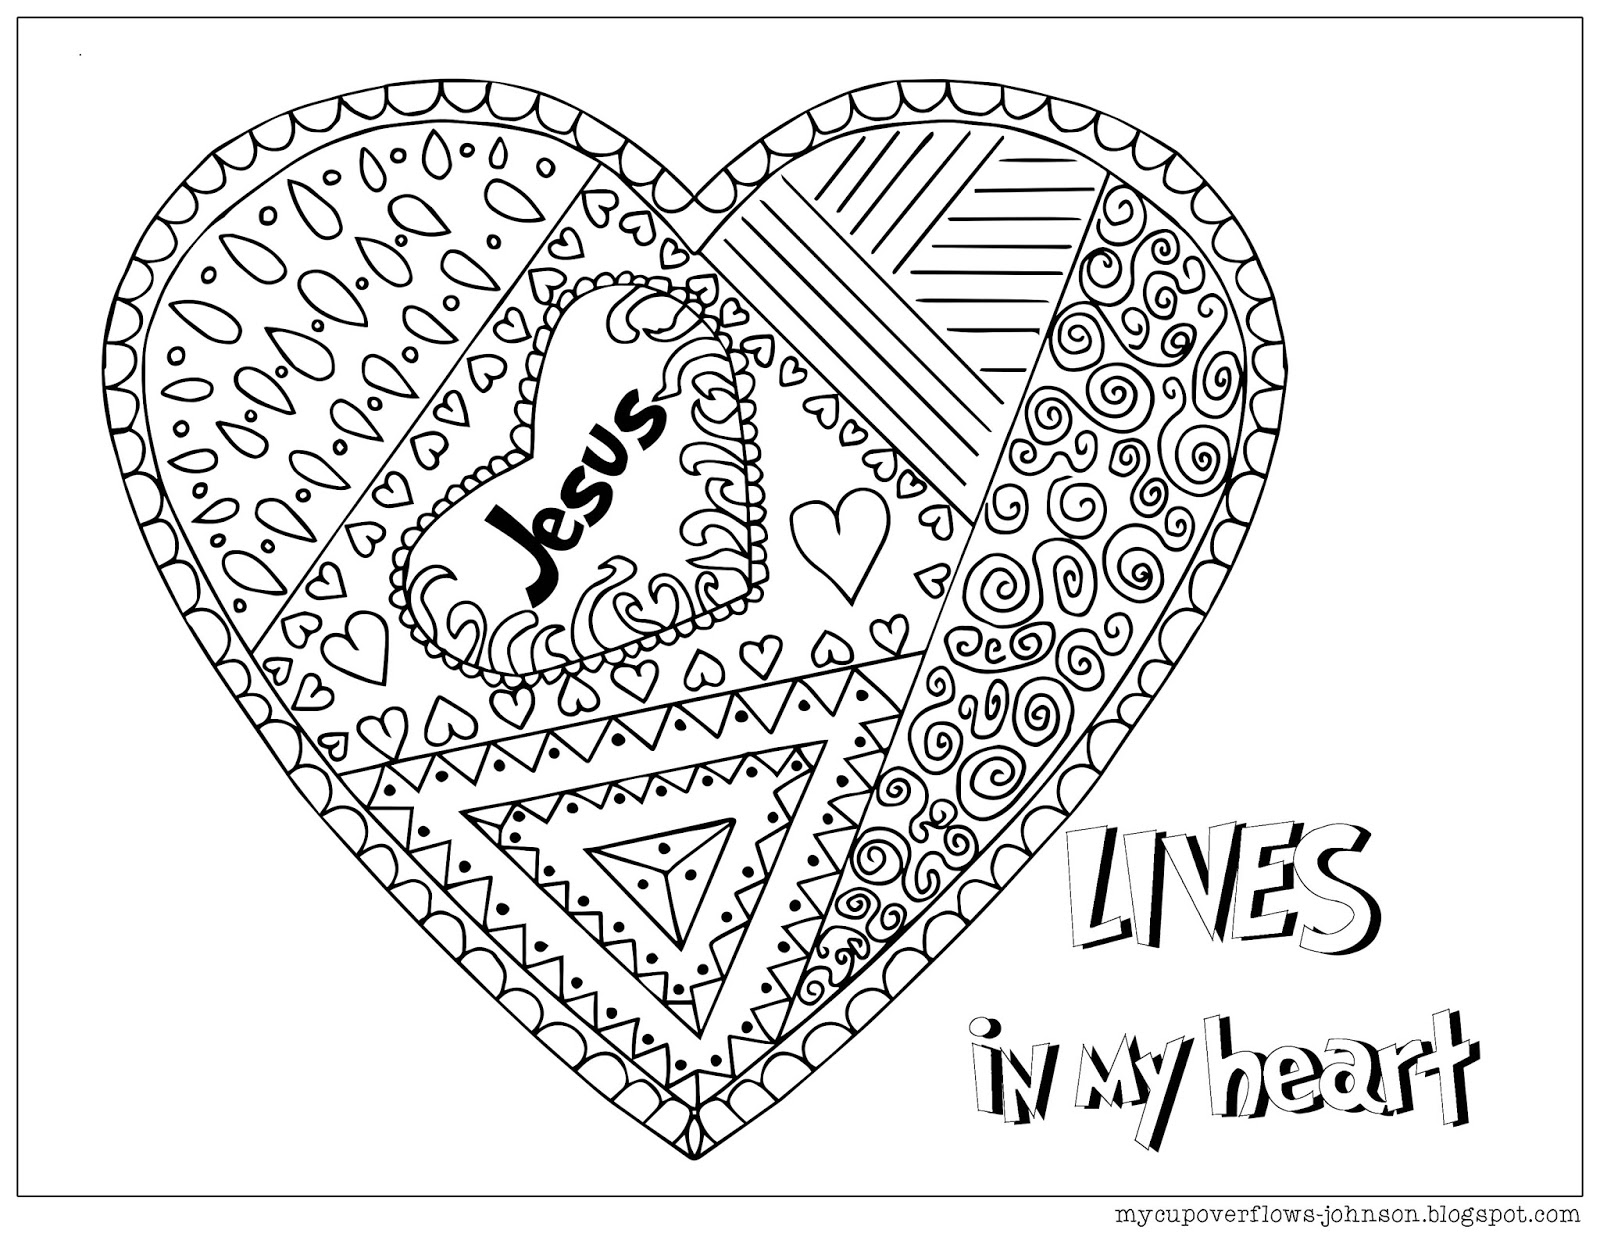 My Cup Overflows: Coloring Pages for Valentine's Day